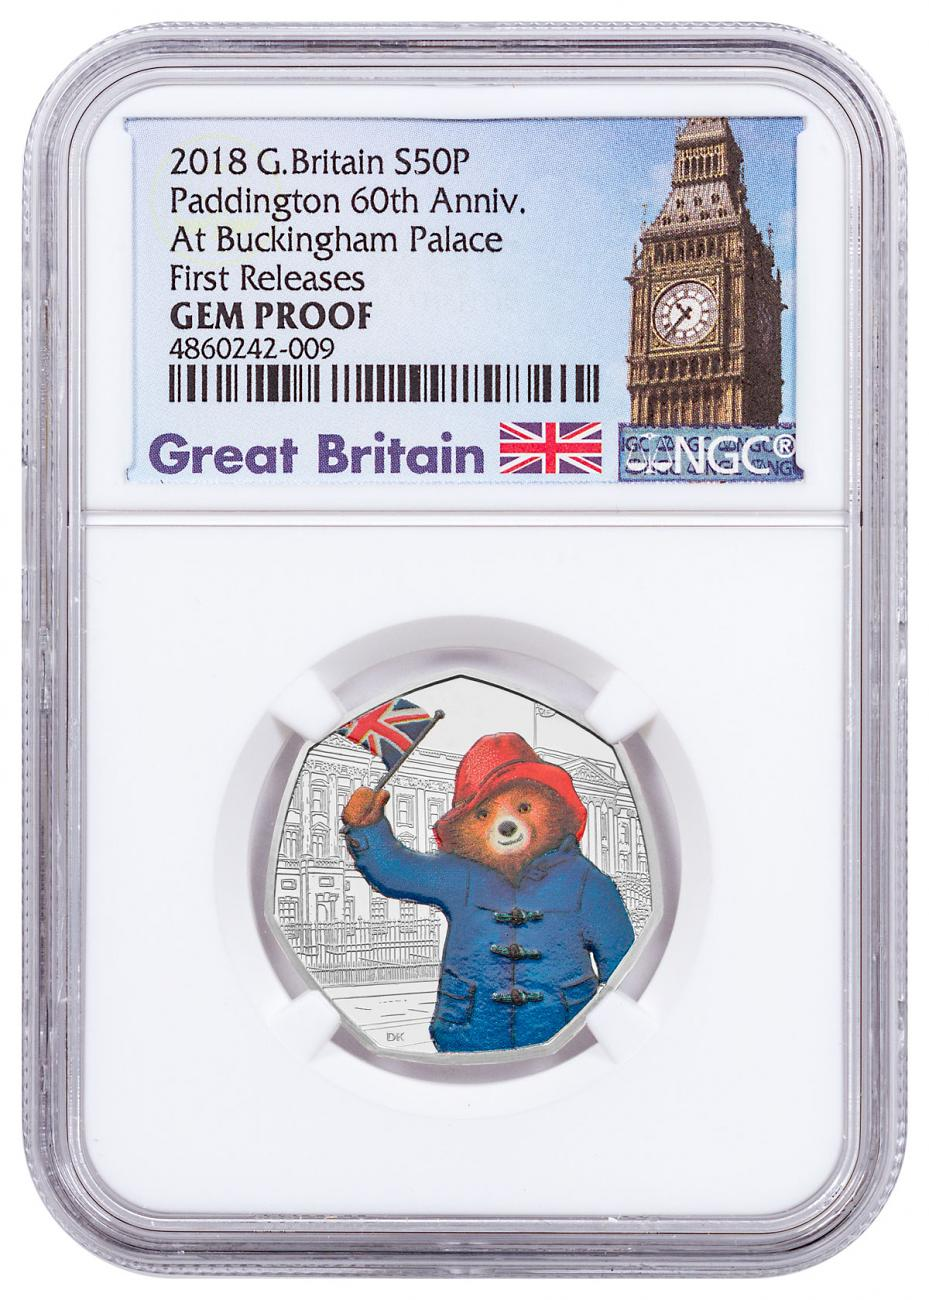 2018 Great Britain Paddington Bear - At Buckingham Palace 8 g Silver Proof 50p Coin NGC GEM Proof FR Exclusive Big Ben Label